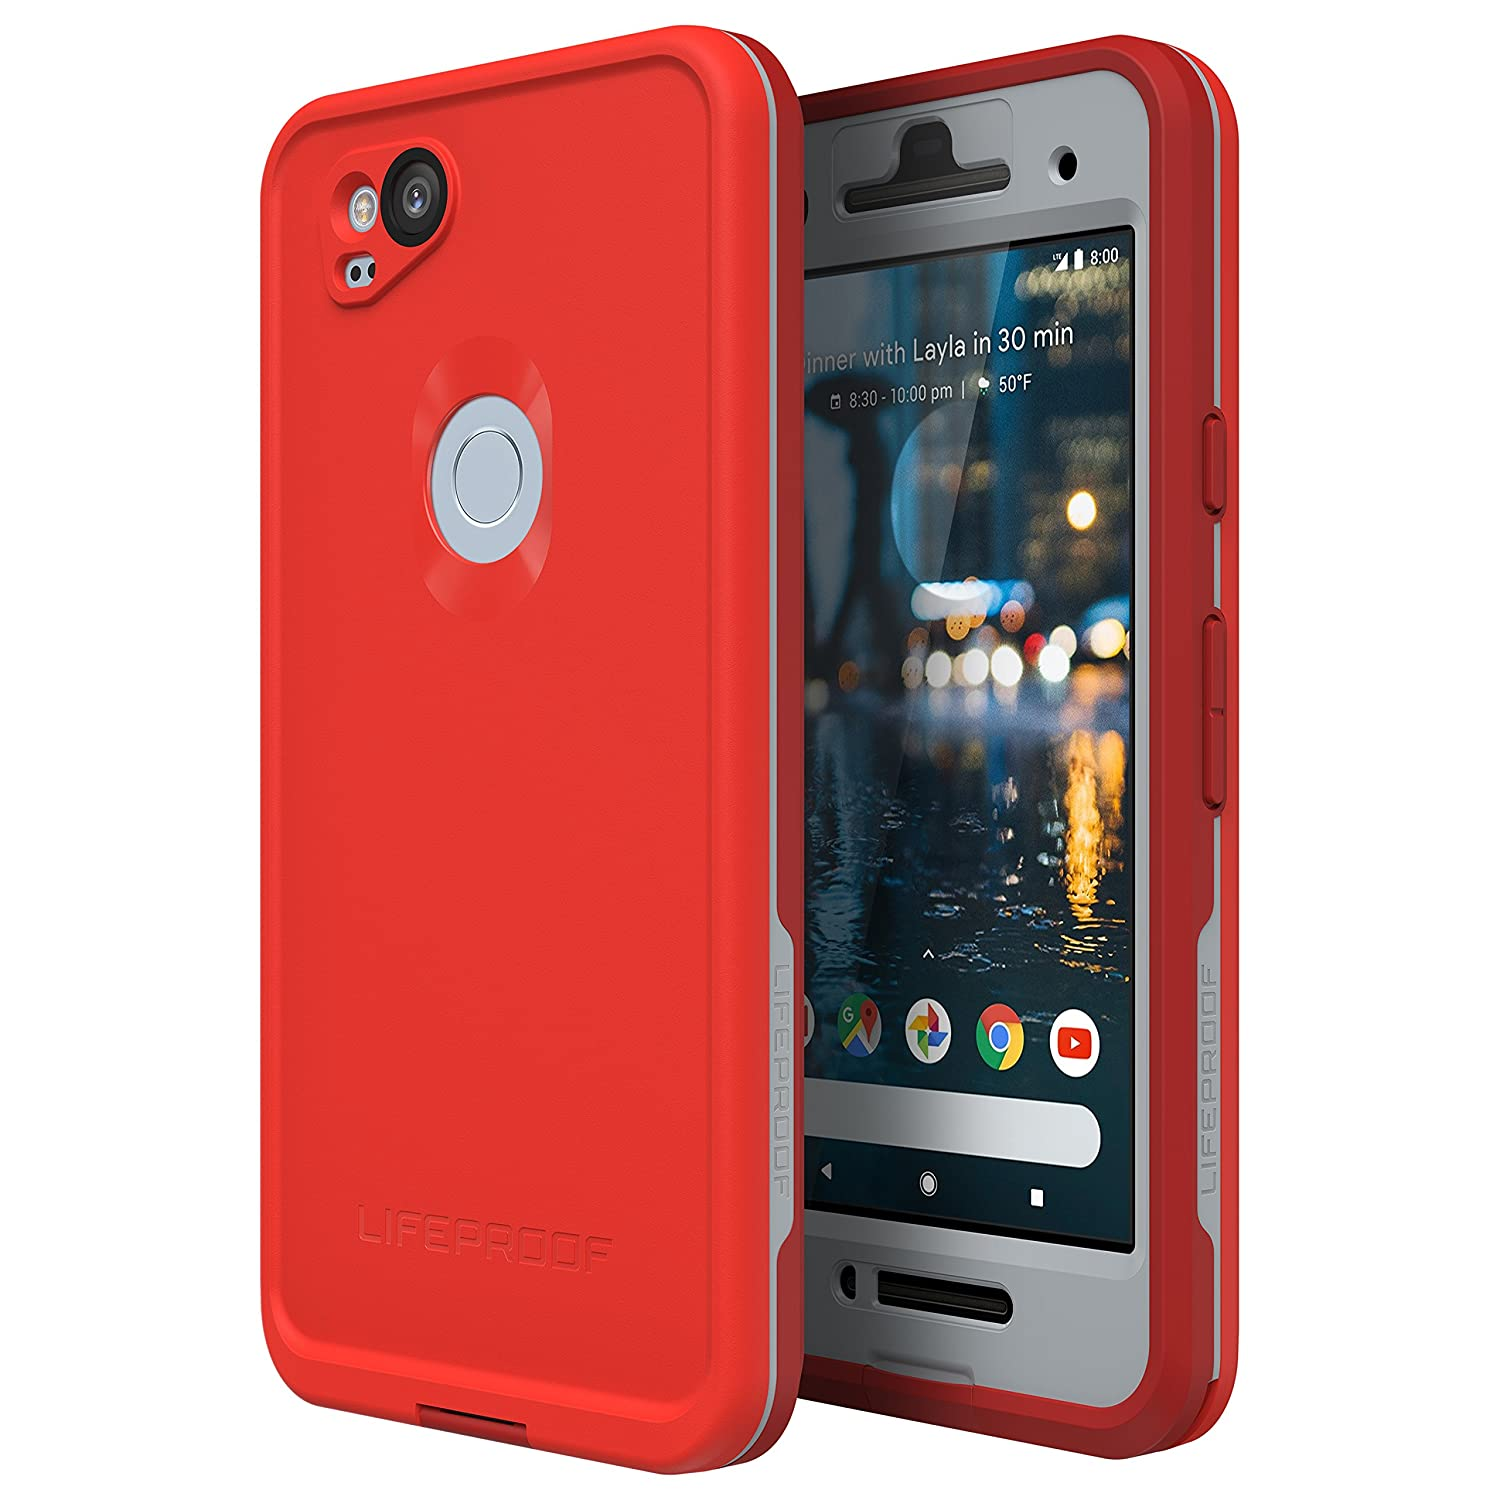 wholesale dealer 3dd8c 5e3c9 Lifeproof FRĒ Series Waterproof Case for Google Pixel 2 - Retail Packaging  - FIRE Run (Cherry Tomato/Sleet/Molten Lava)